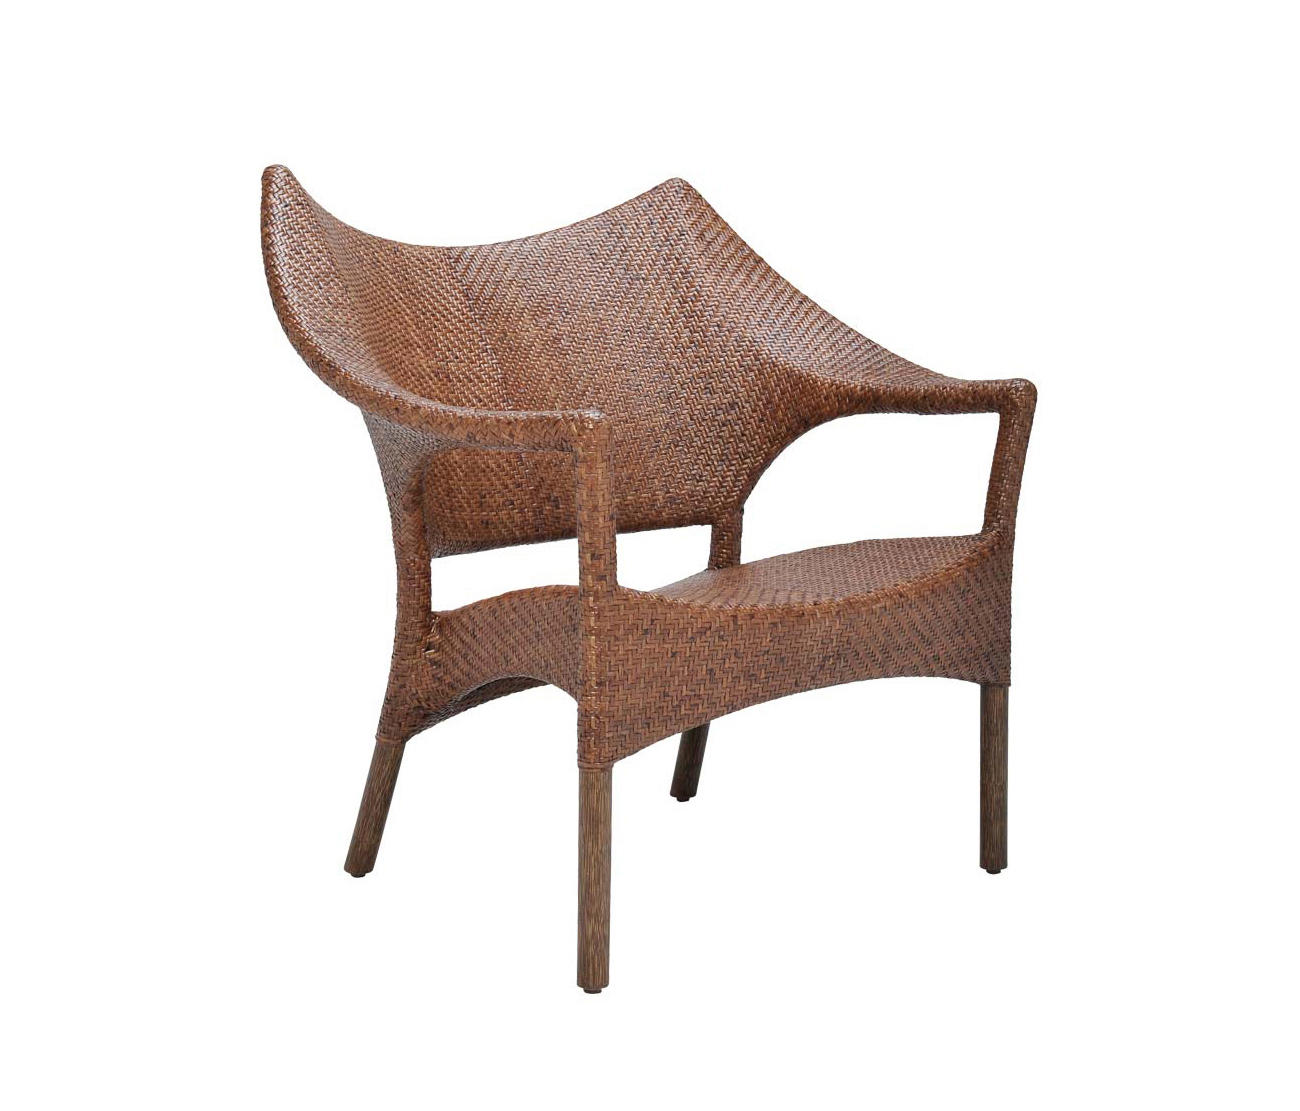 Amari Rattan Low Back Lounge Chair Armchairs From Janus